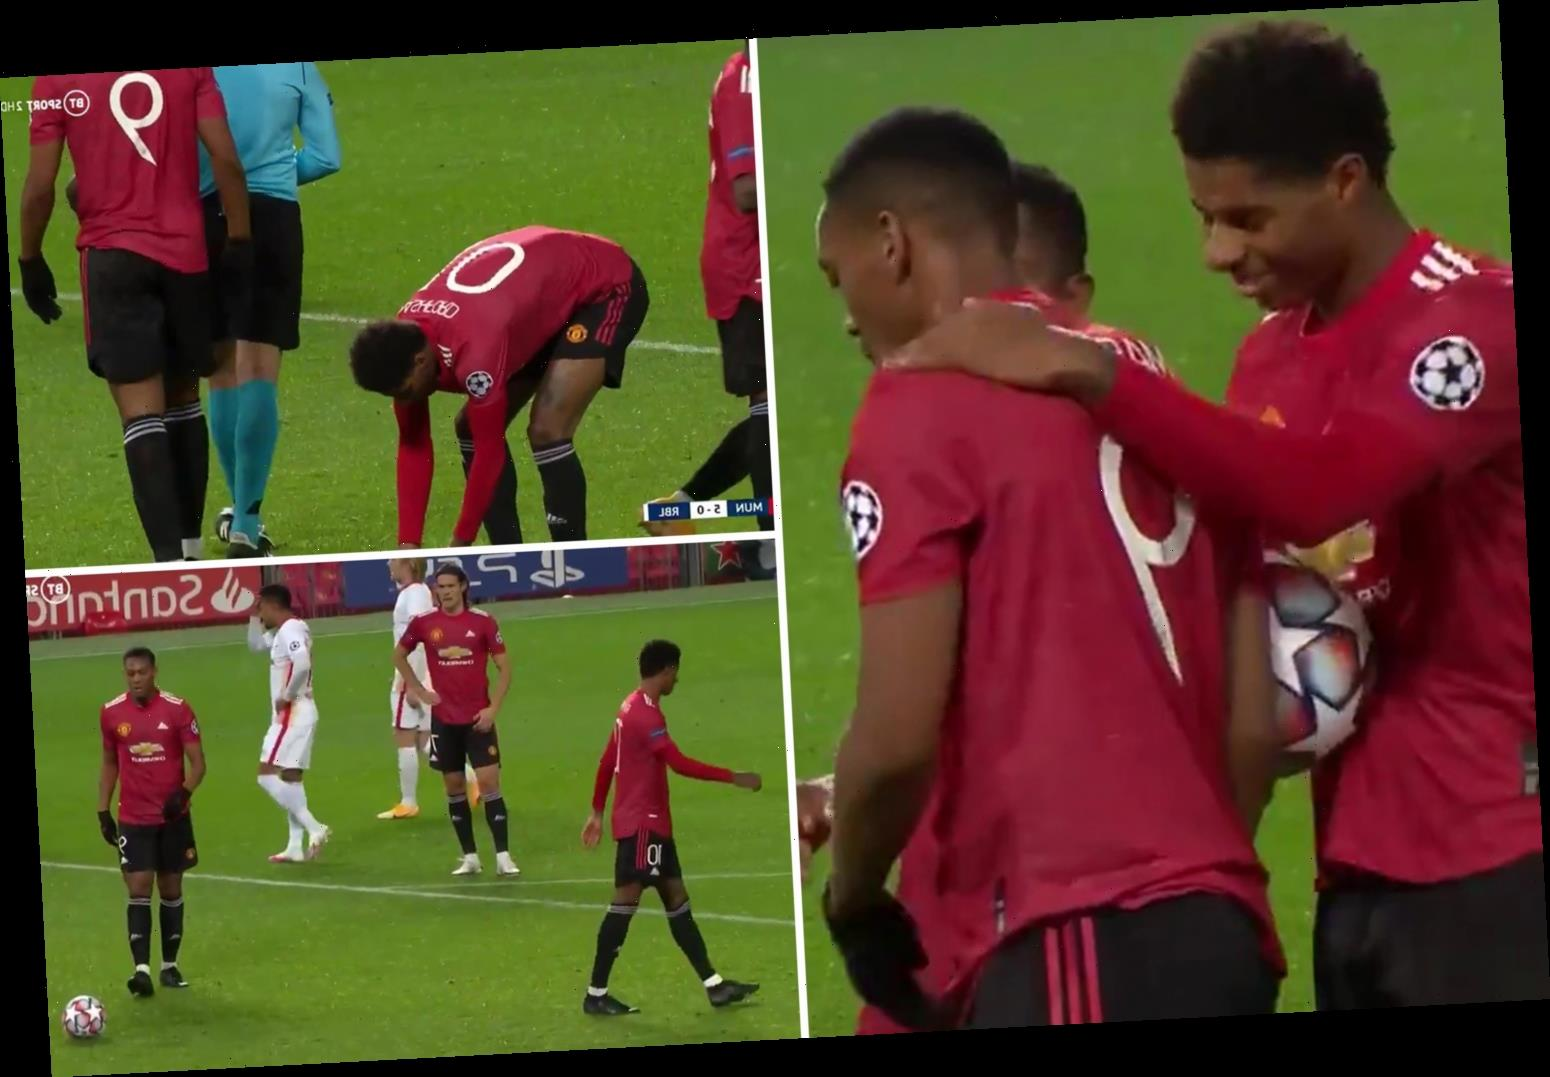 Watch Marcus Rashford give penalty to Martial even though he's on hat-trick as Man Utd hero dubbed 'captain material'